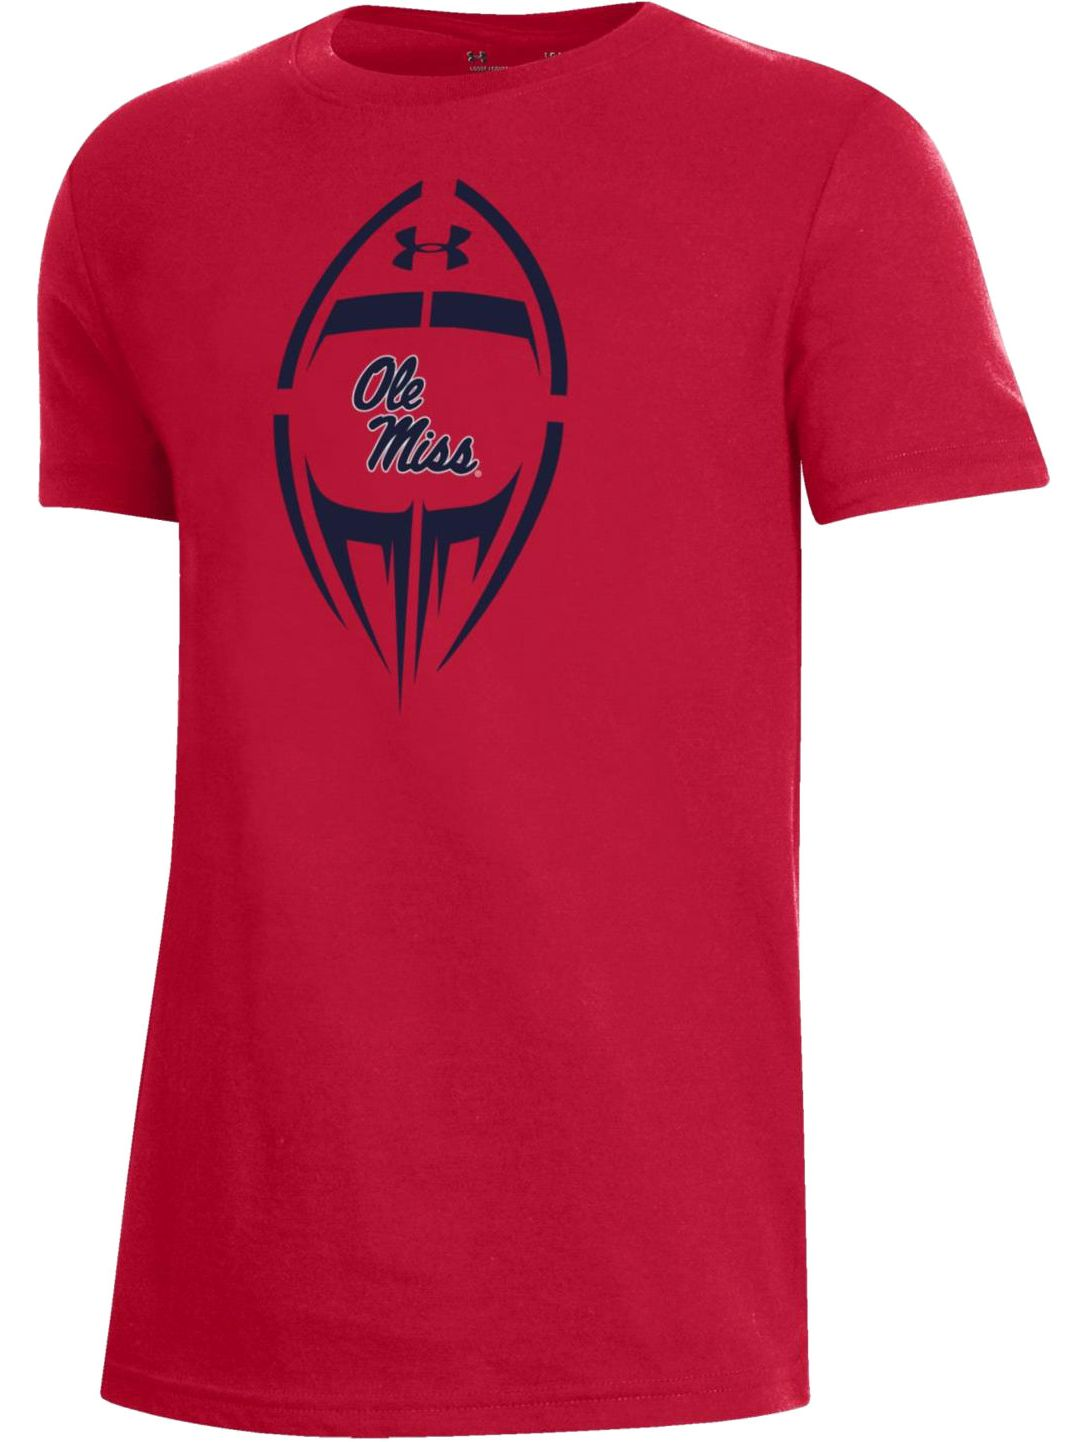 best website 66e12 29f3d Under Armour Youth Ole Miss Rebels Red Performance Cotton Football T-Shirt